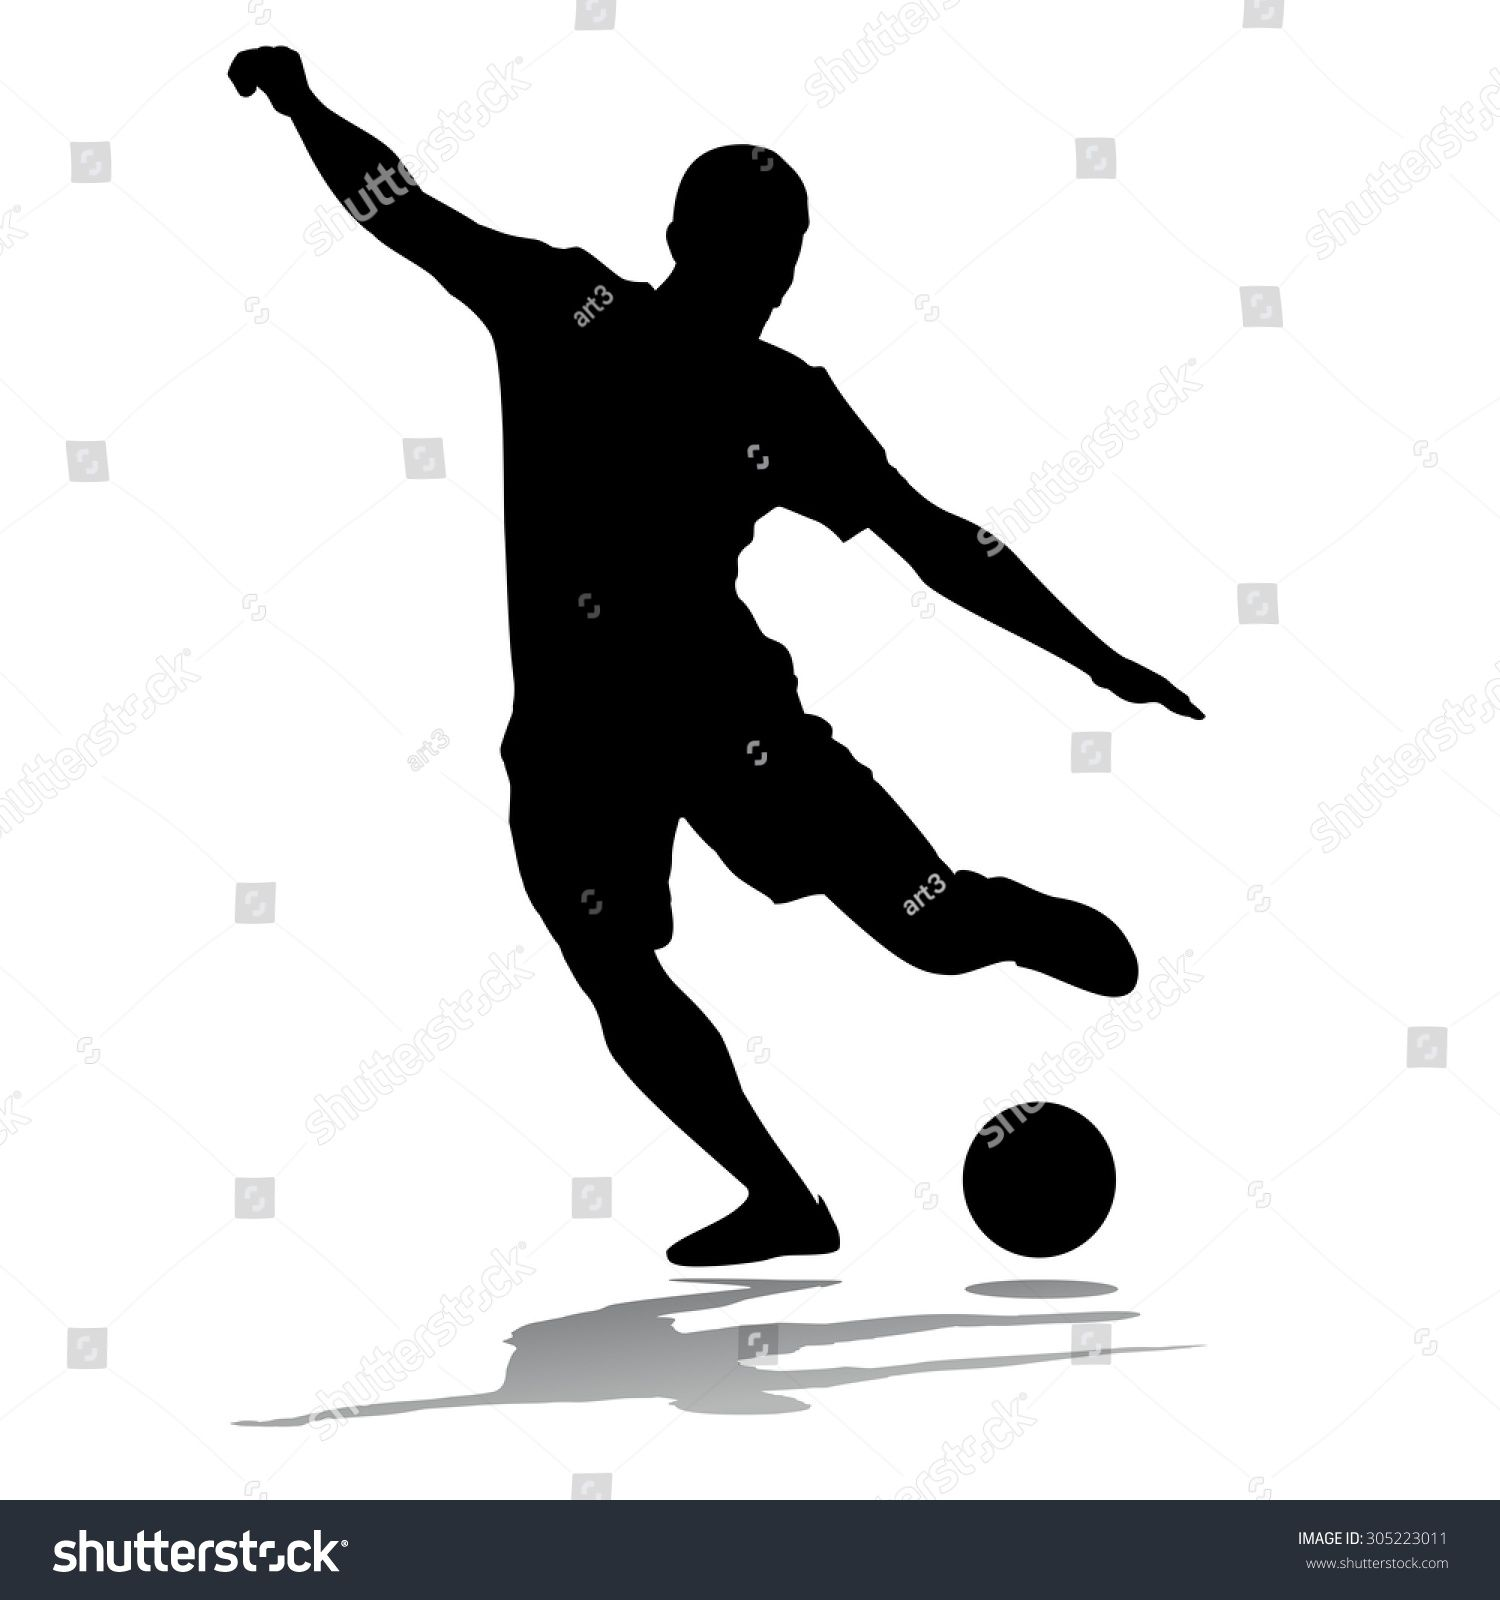 Vector Soccer Player Silhouette Player Shooting White Background Soccer Players Soccer Royalty Free Stock Photos